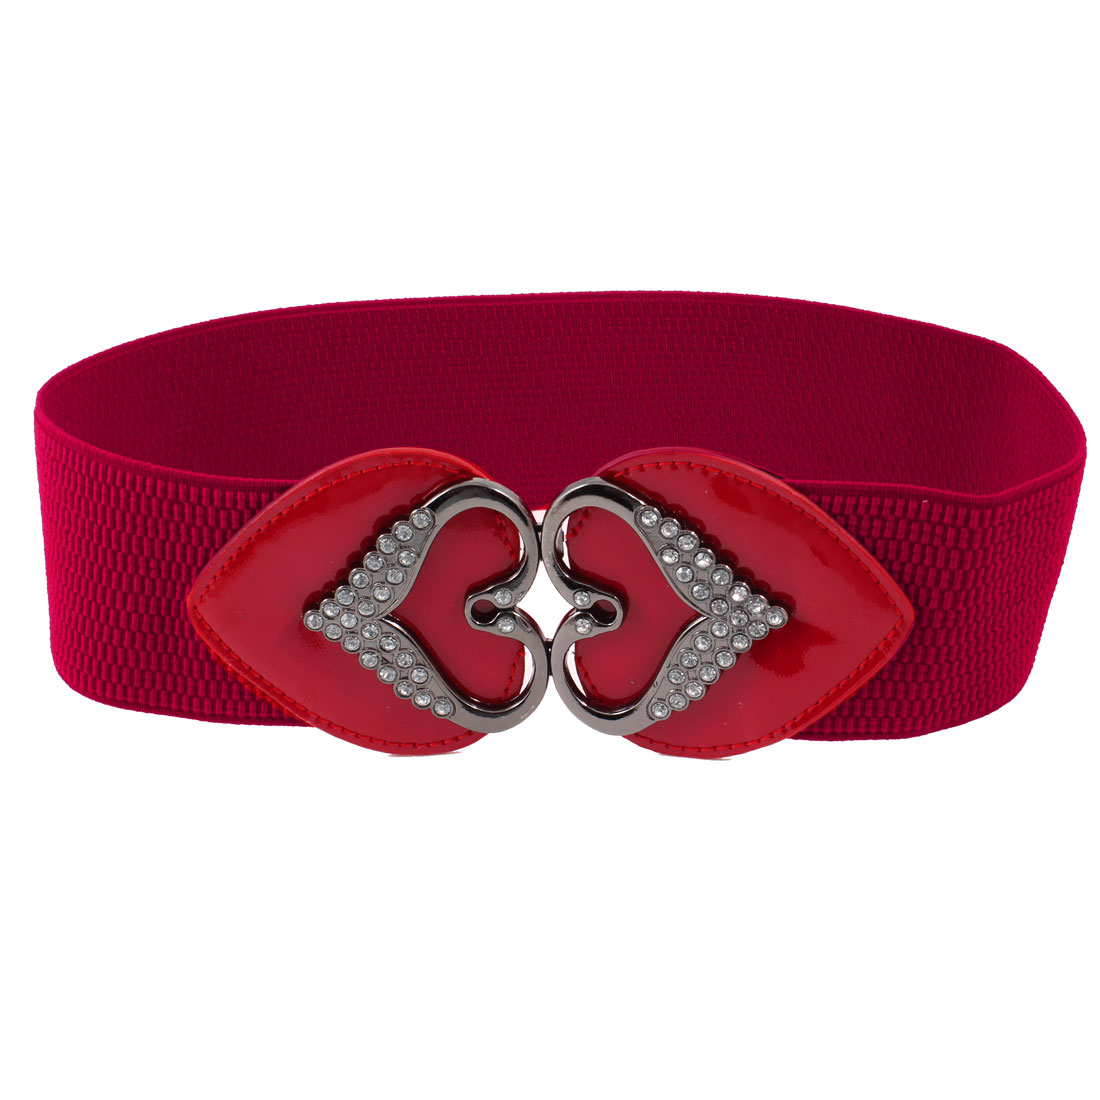 Rhinestone Accent Interlocking Buckle Stretch Waistbelt Cinch Belt Red for Lady